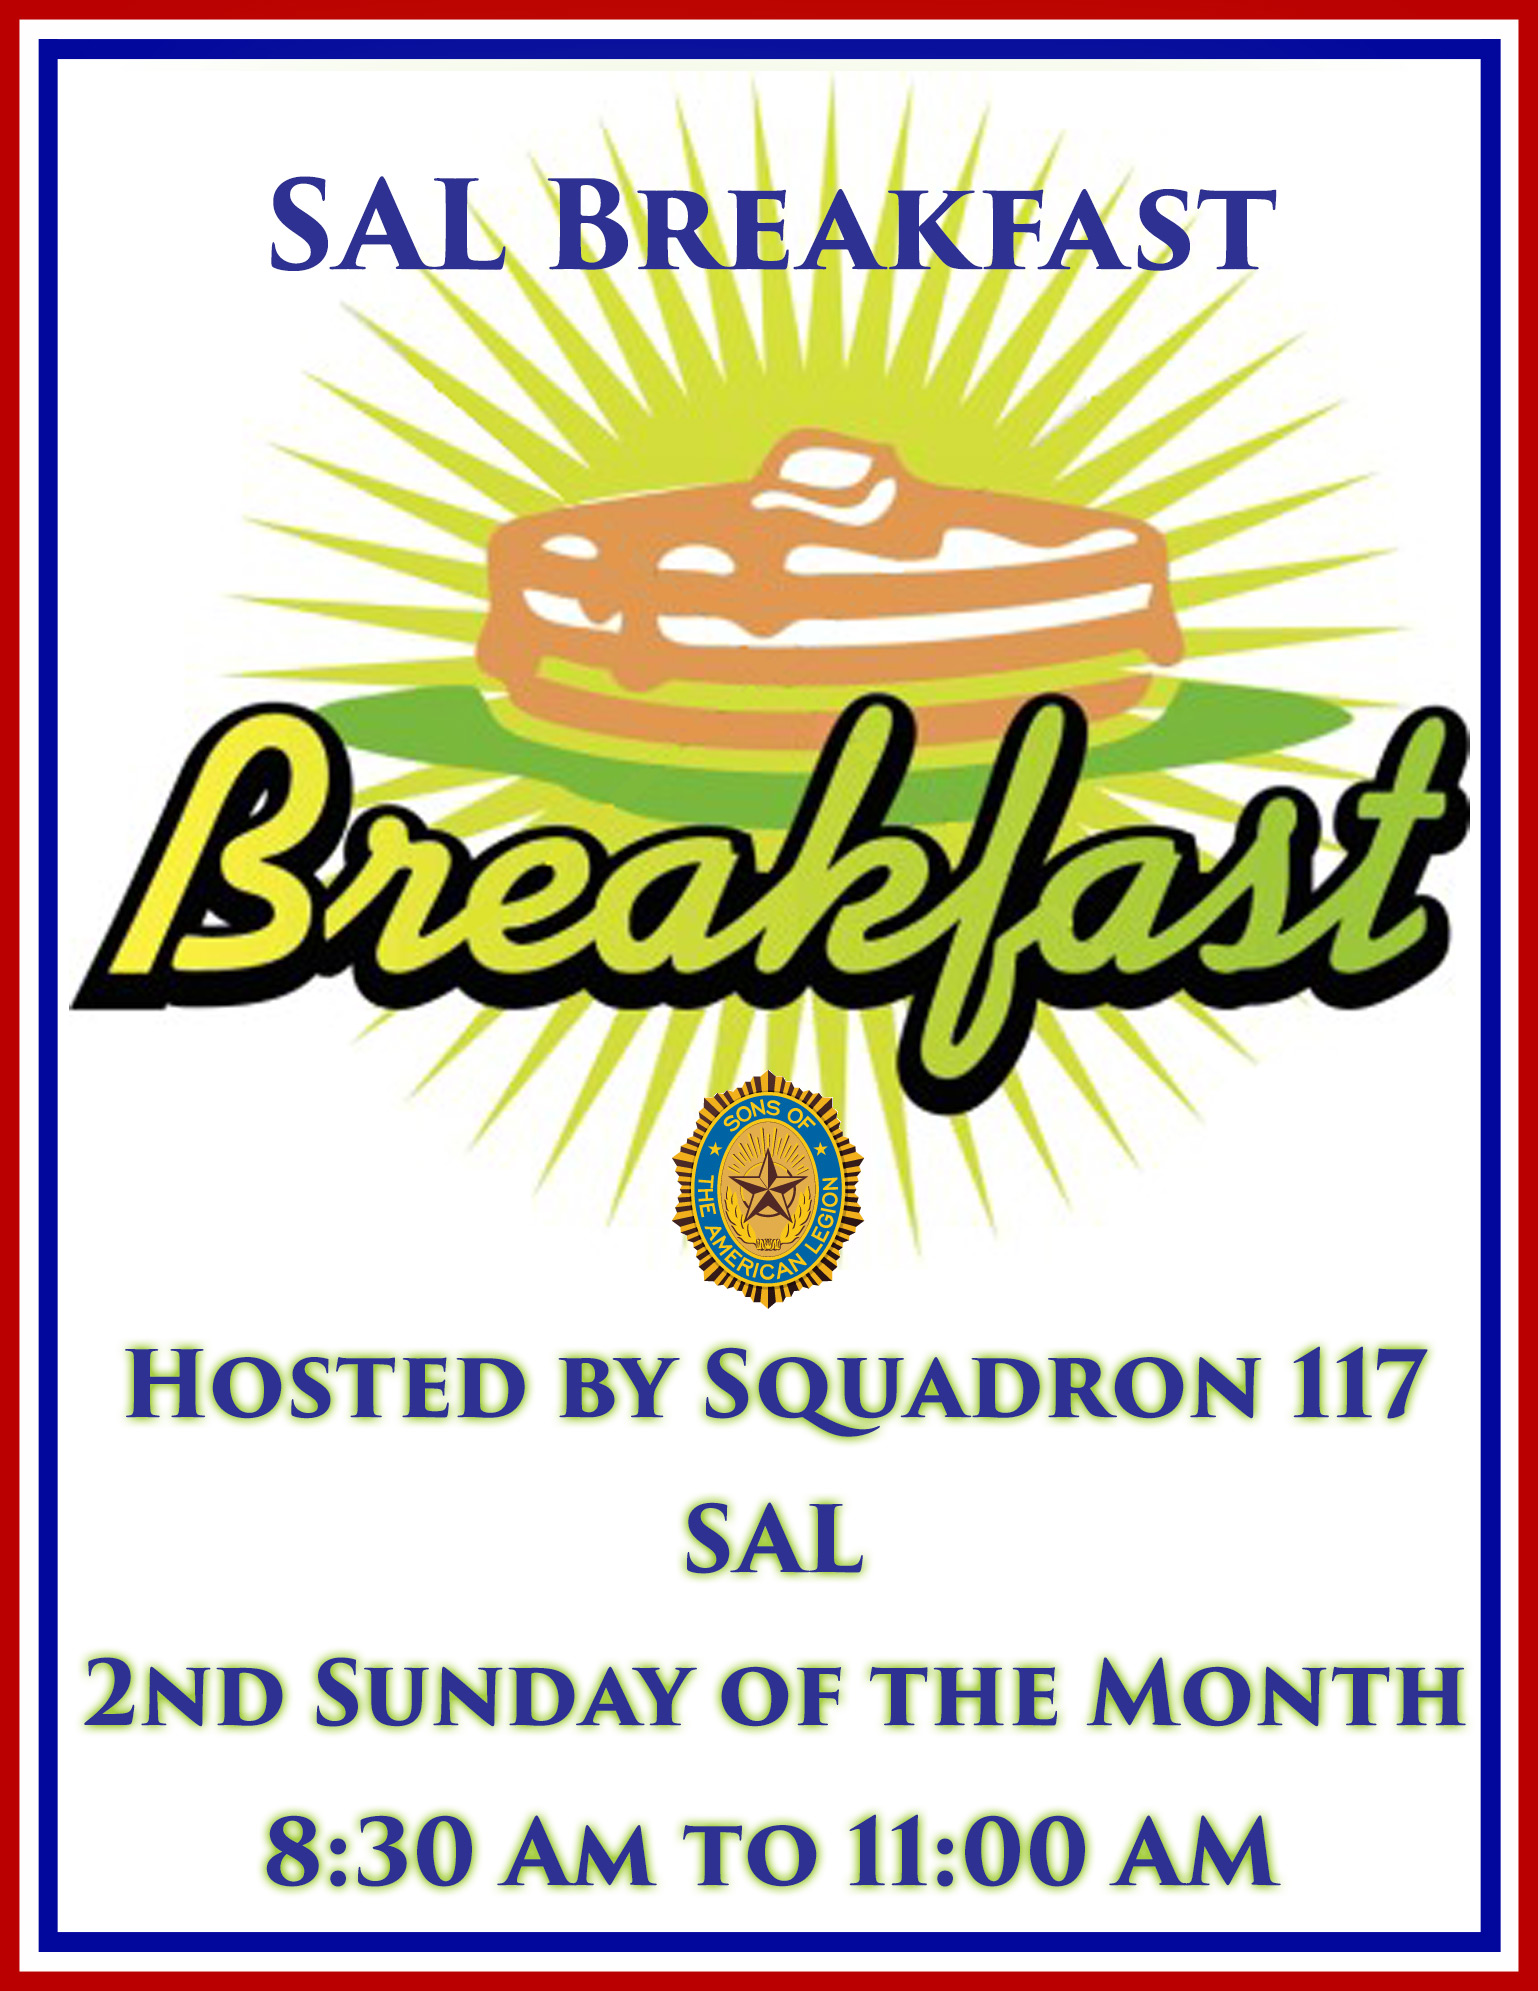 Breakfast Hosted By The SAL